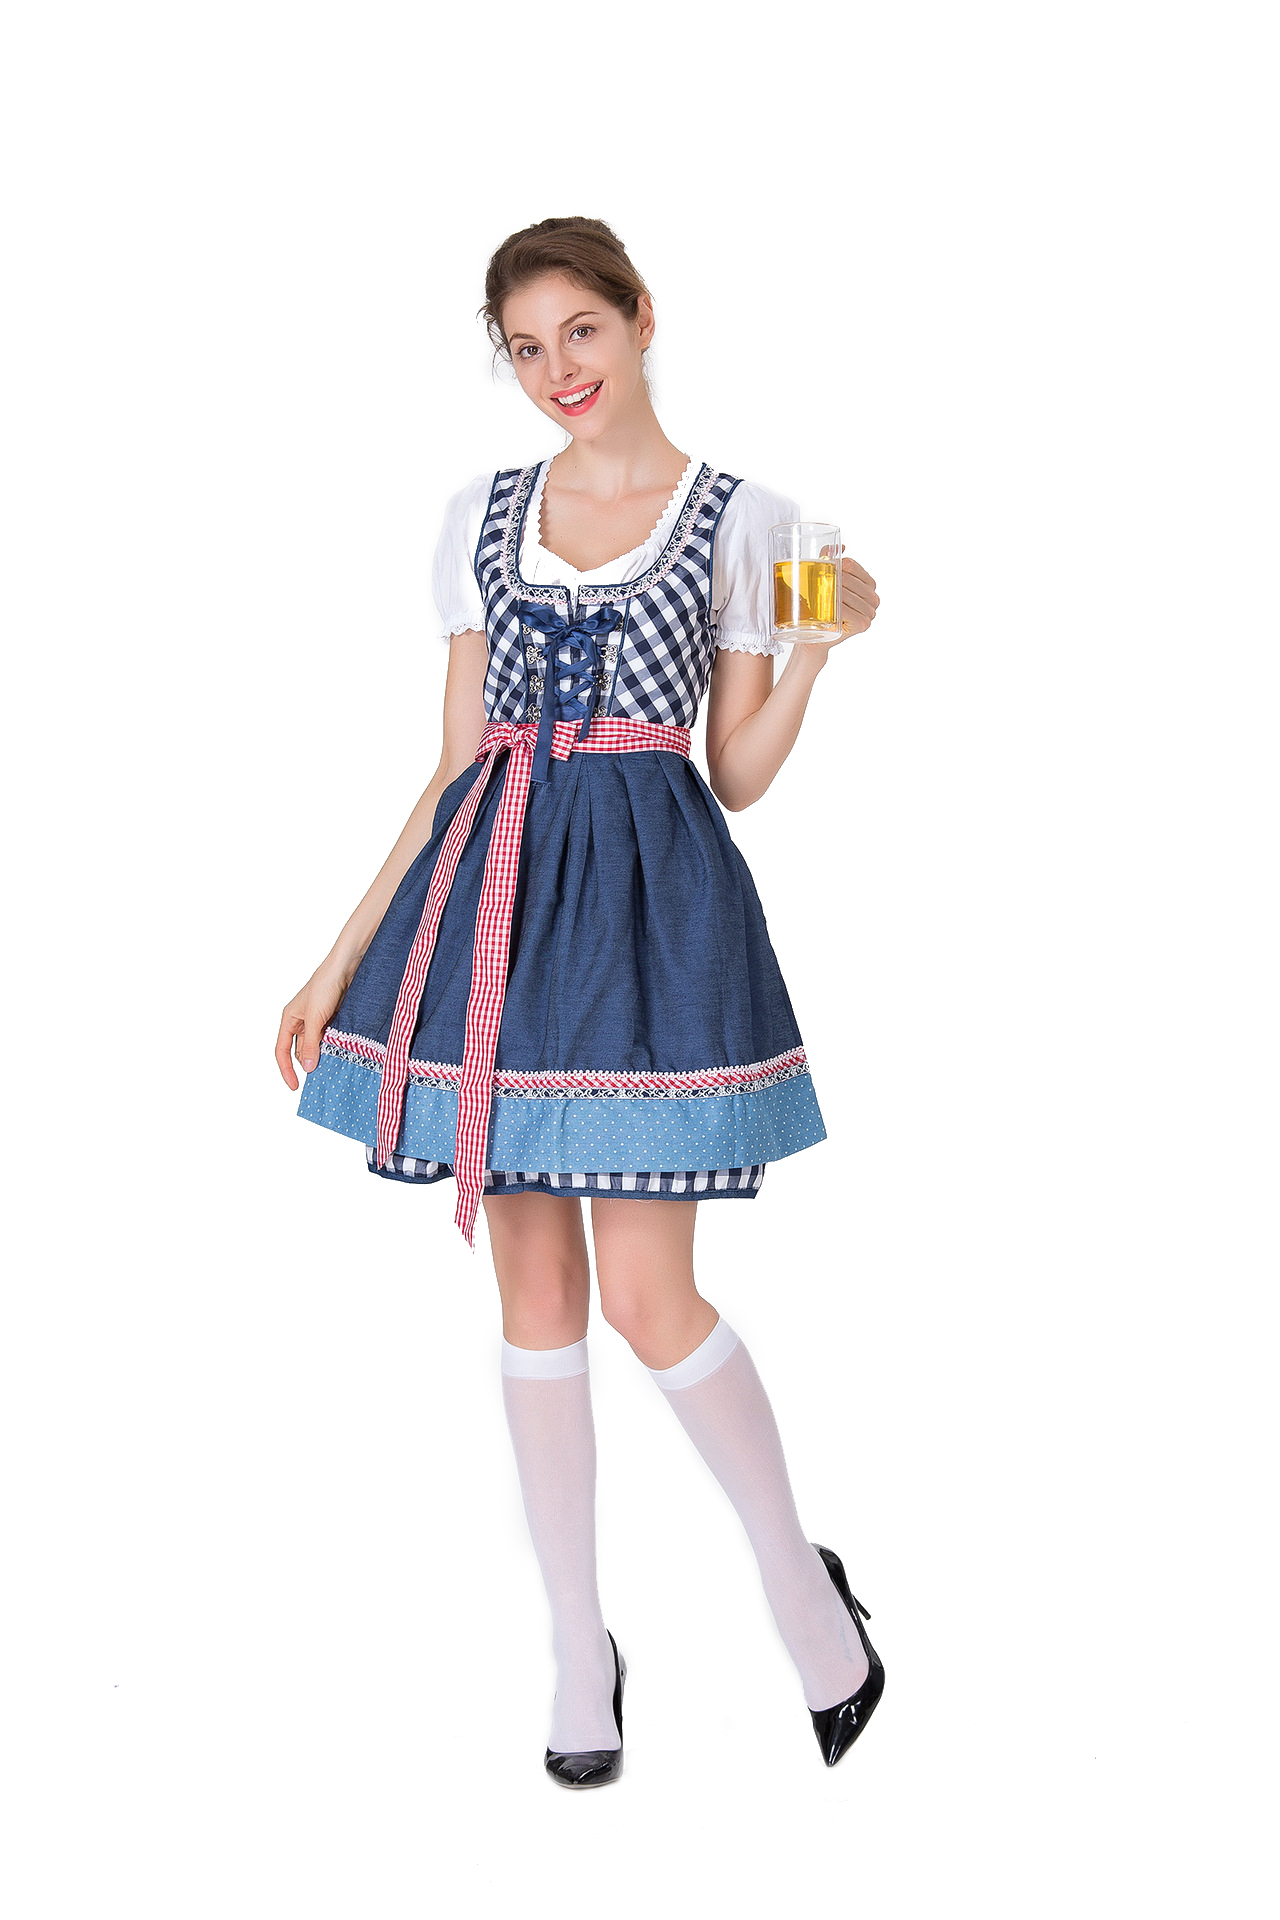 Women Dirndl Plaid Pattern Bavaria Style Uniform Oktoberfest Costume Beer Festival Dress blue_XXL